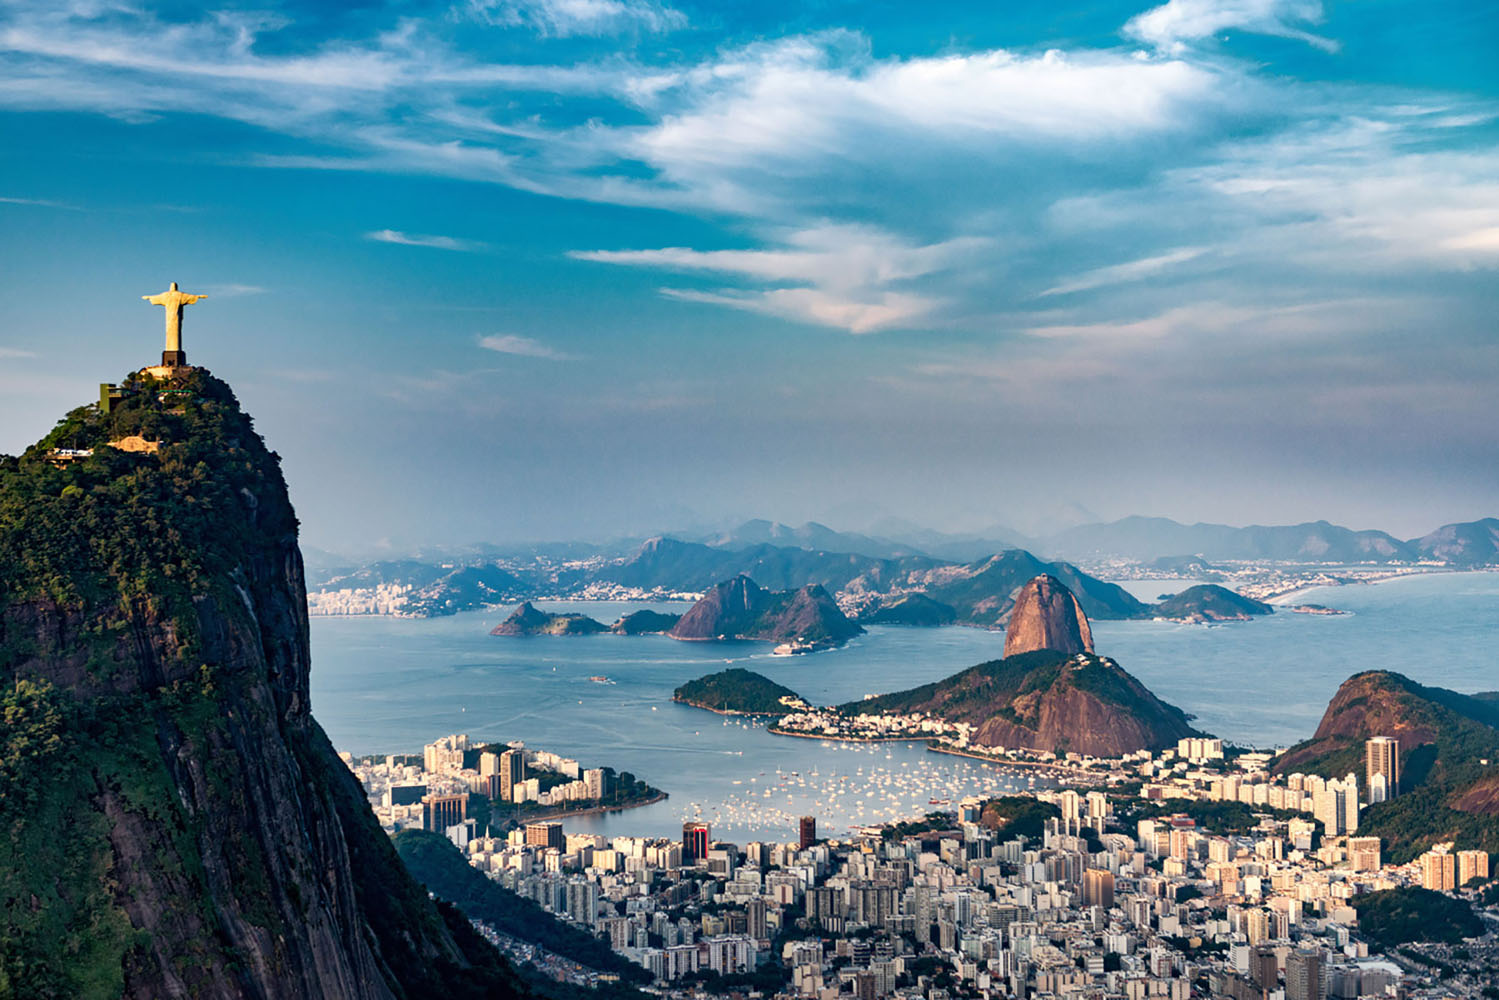 Aerial view of Rio De Janeiro. Brazil in South America with statue of Christ the Redeemer